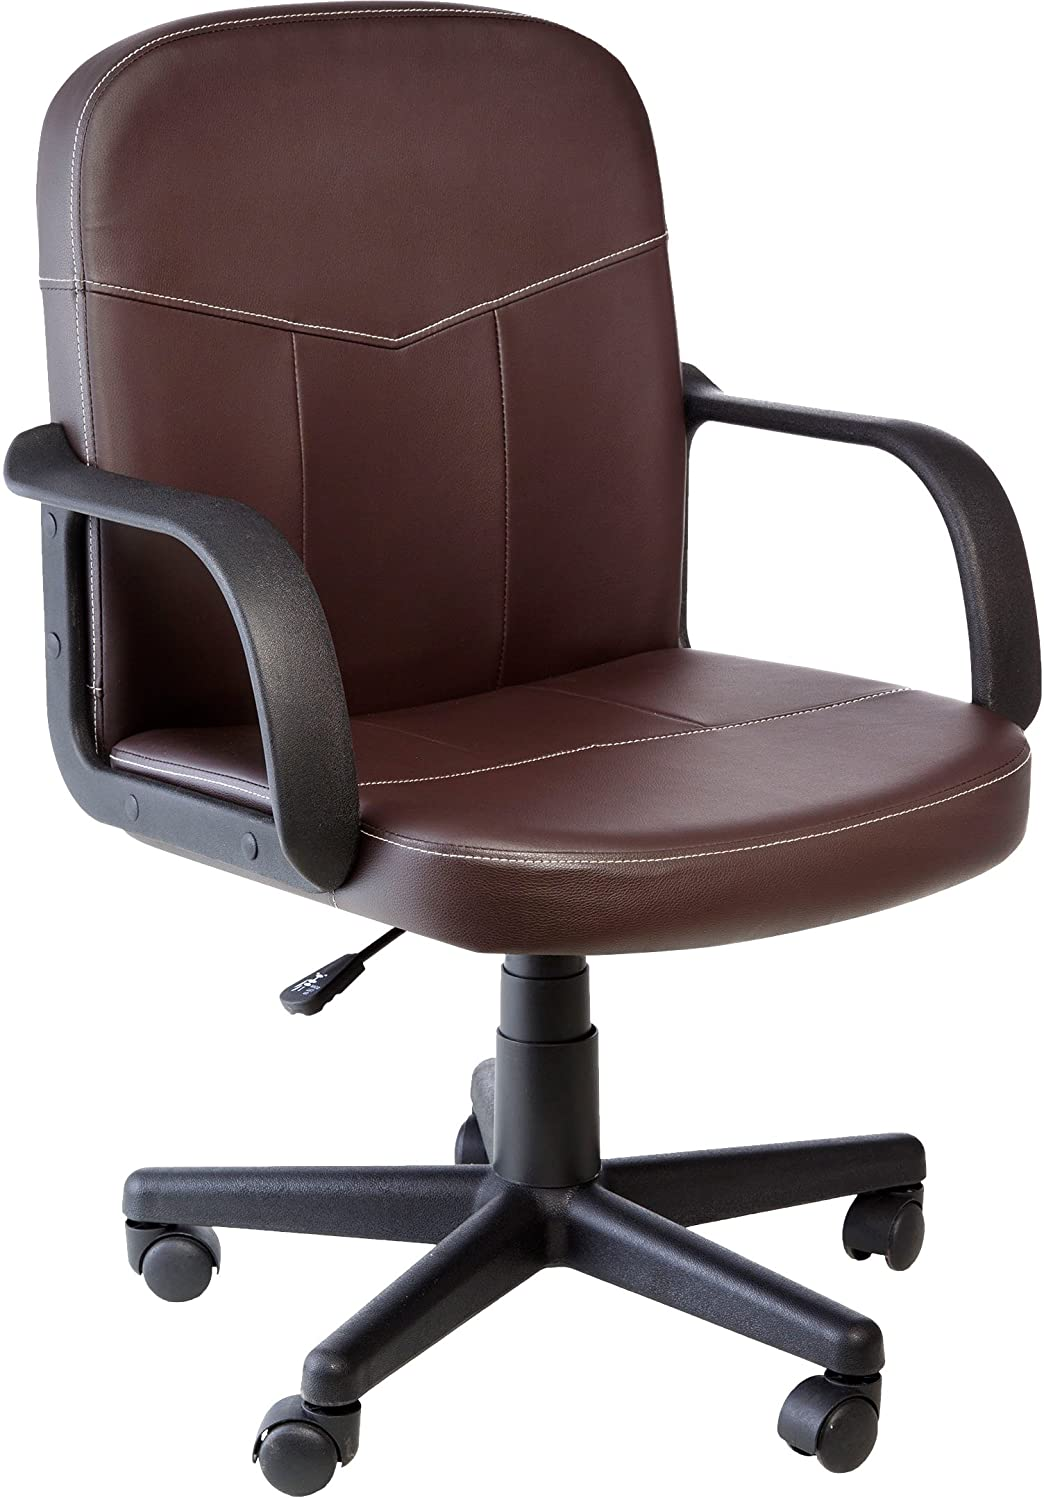 Comfort Office Chair. Amazon.com: Comfort Products Mid Back Leather Office  Chair